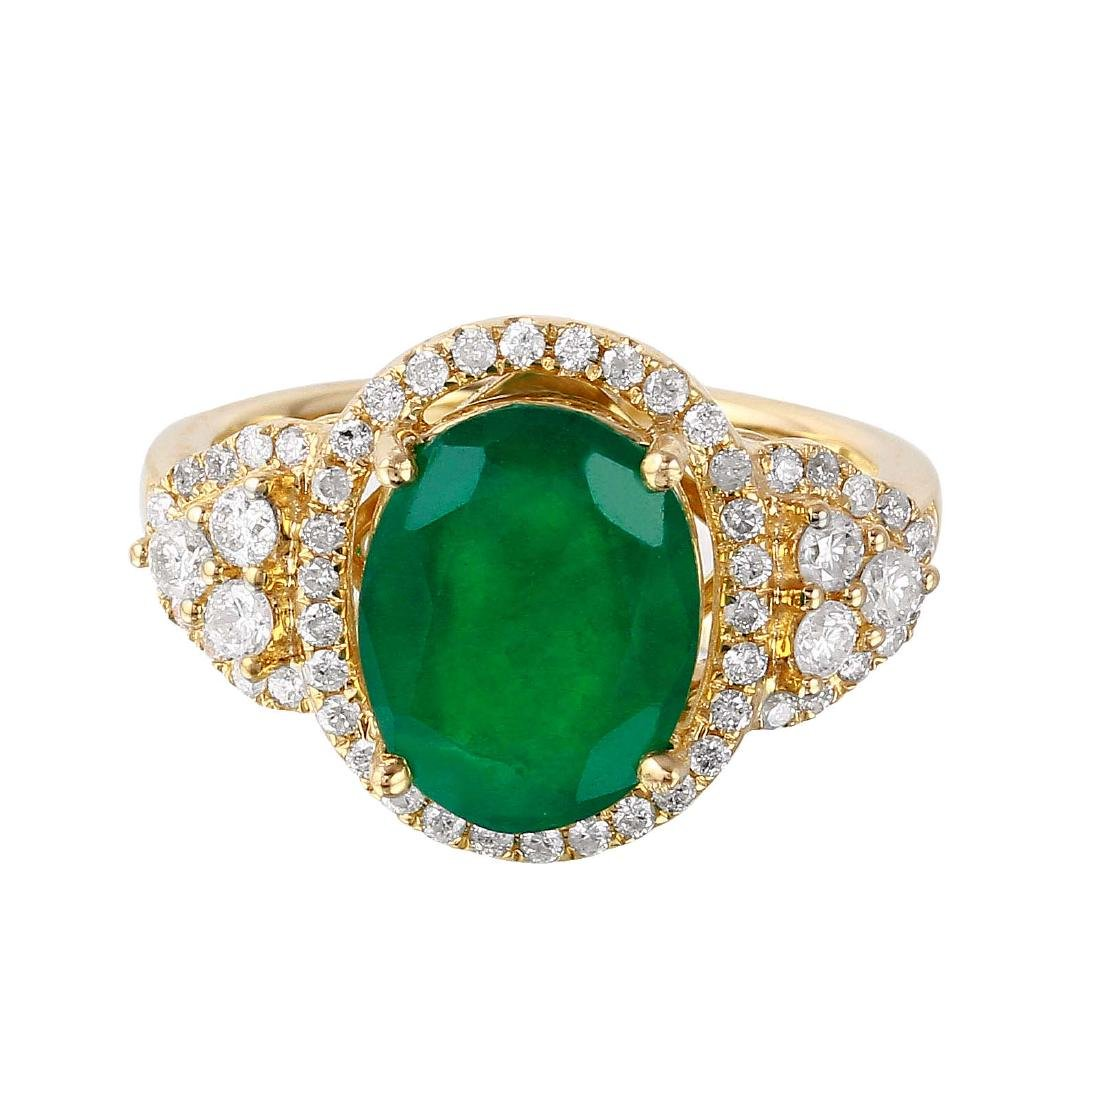 14KT Yellow Gold Emerald and Diamond Ring - 6